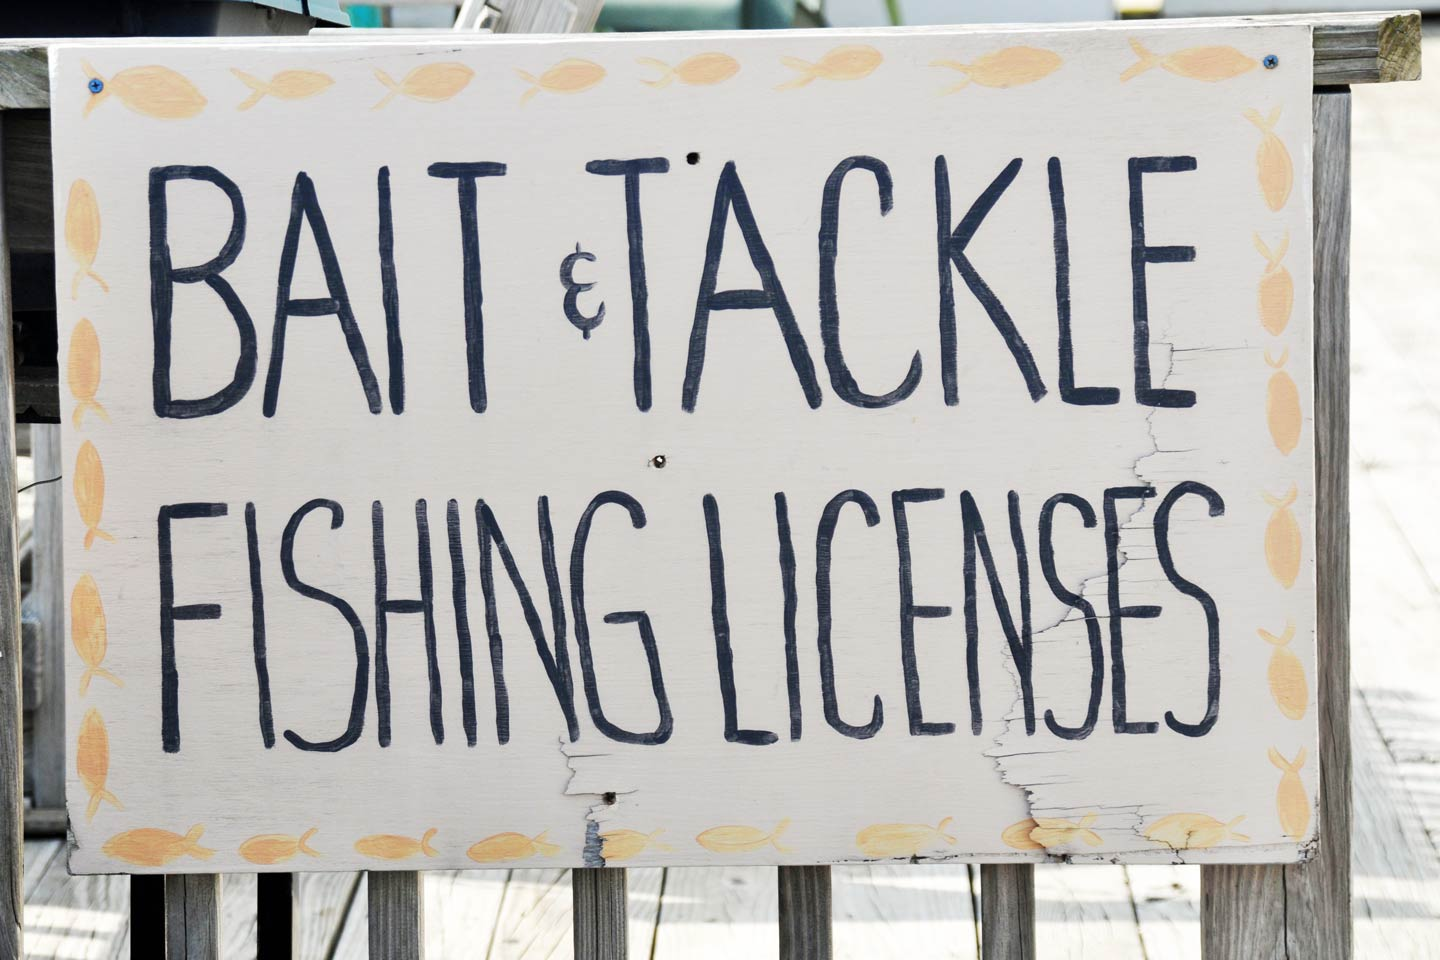 Signage signaling the sale of bait, tackle, and fishing licenses.